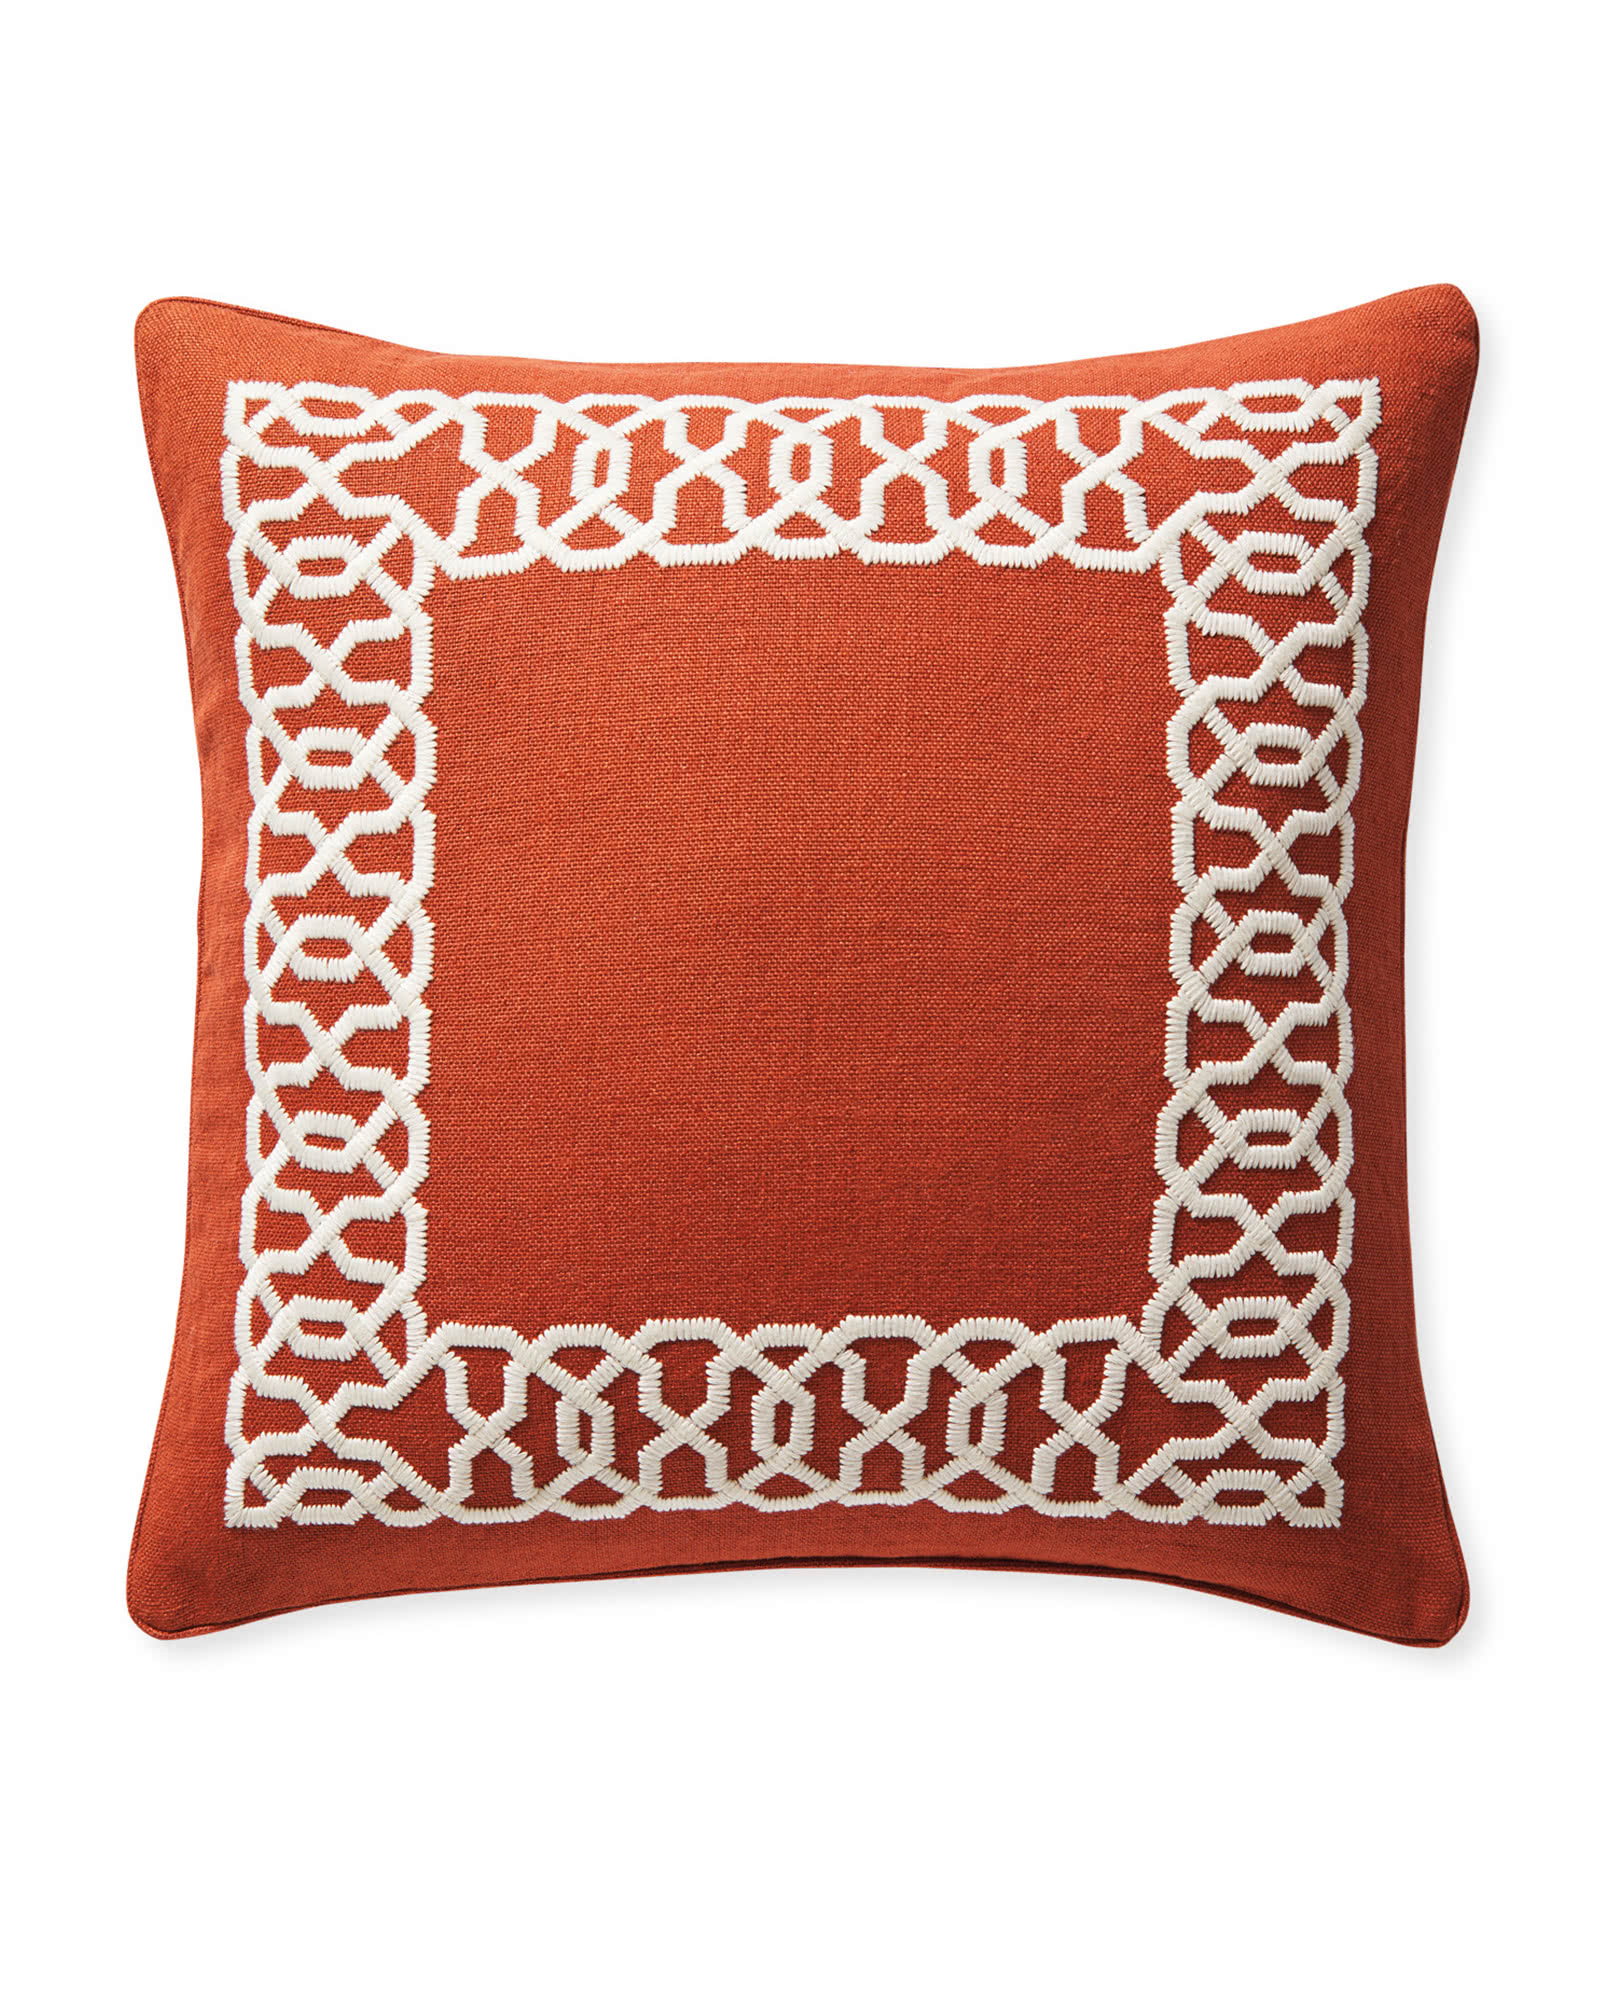 Jetty Pillow Cover, Terracotta